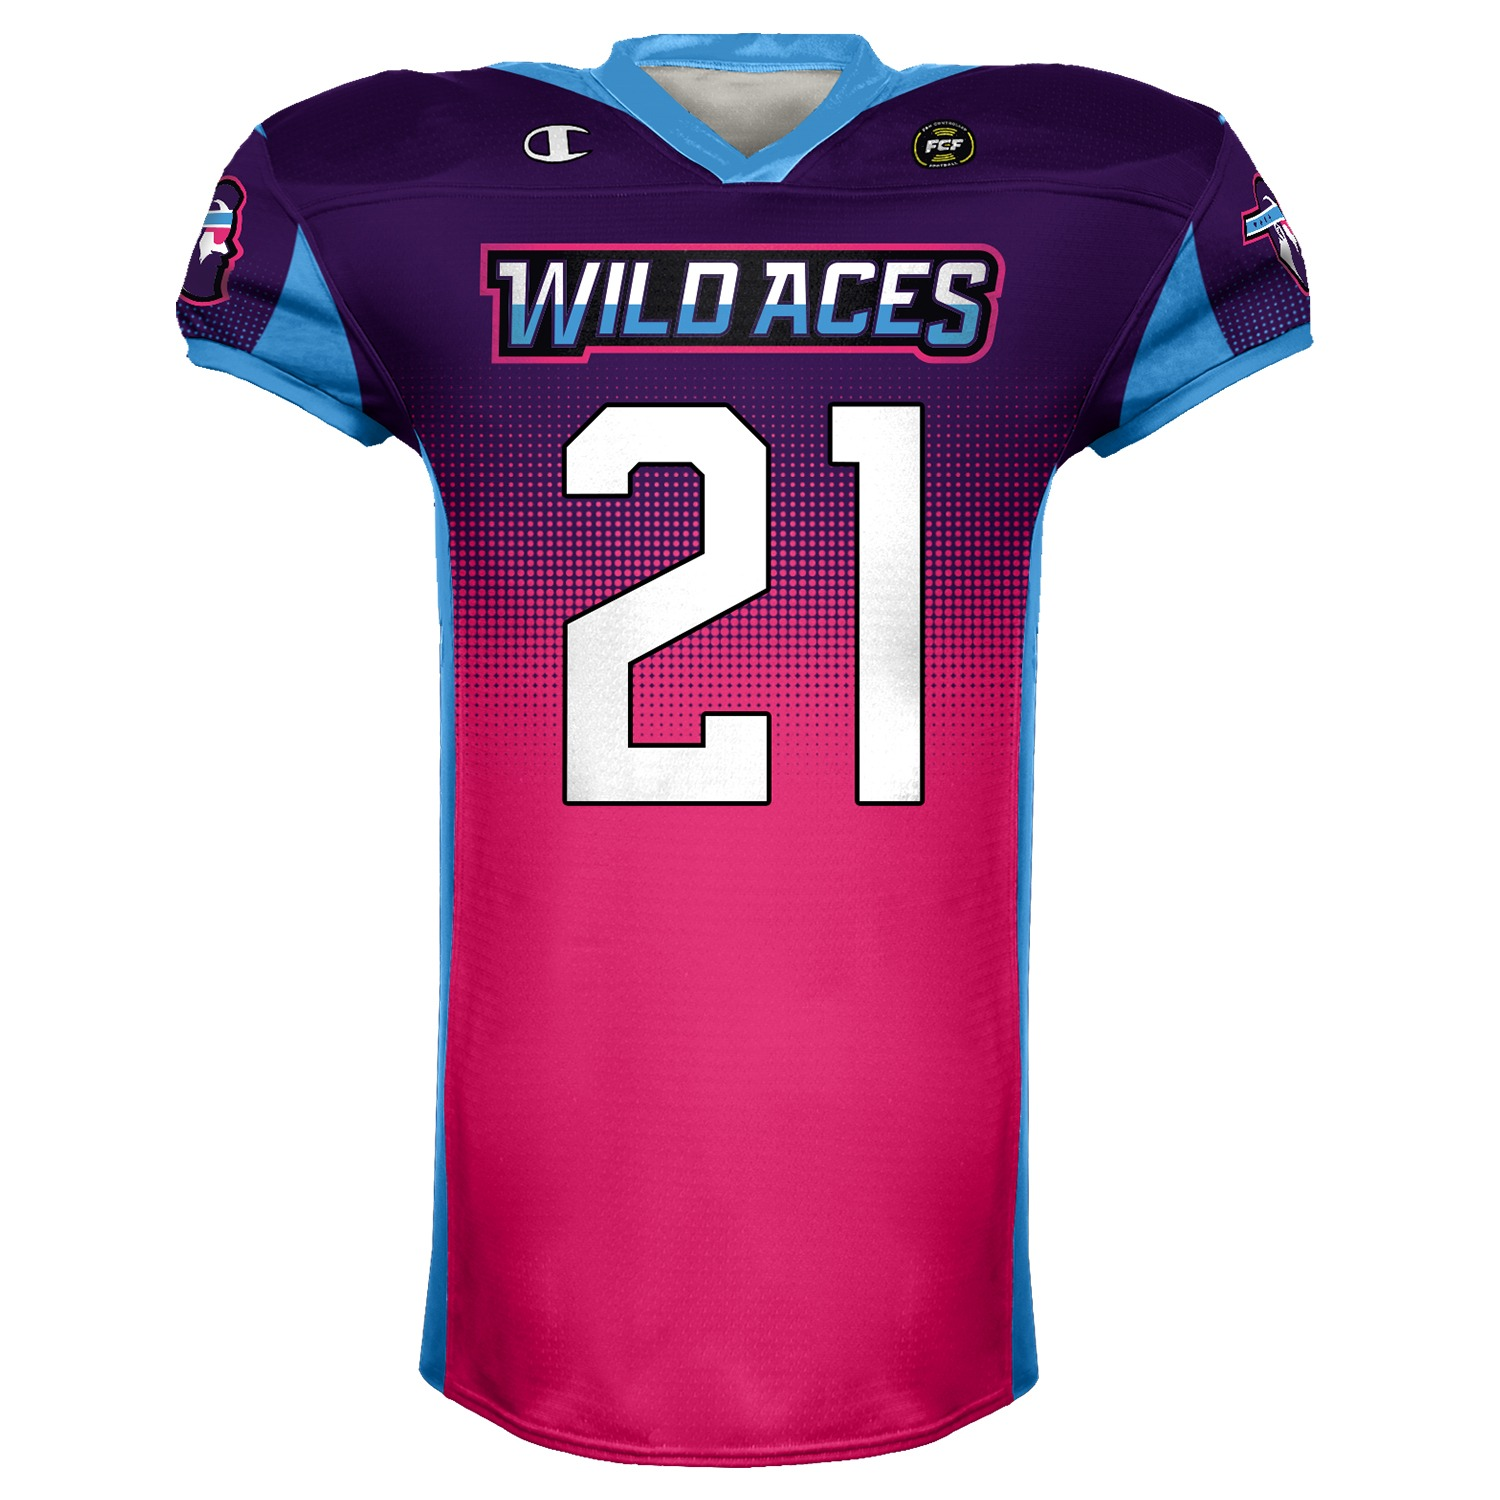 Wild Aces Authentic Champion Jersey product image (1)